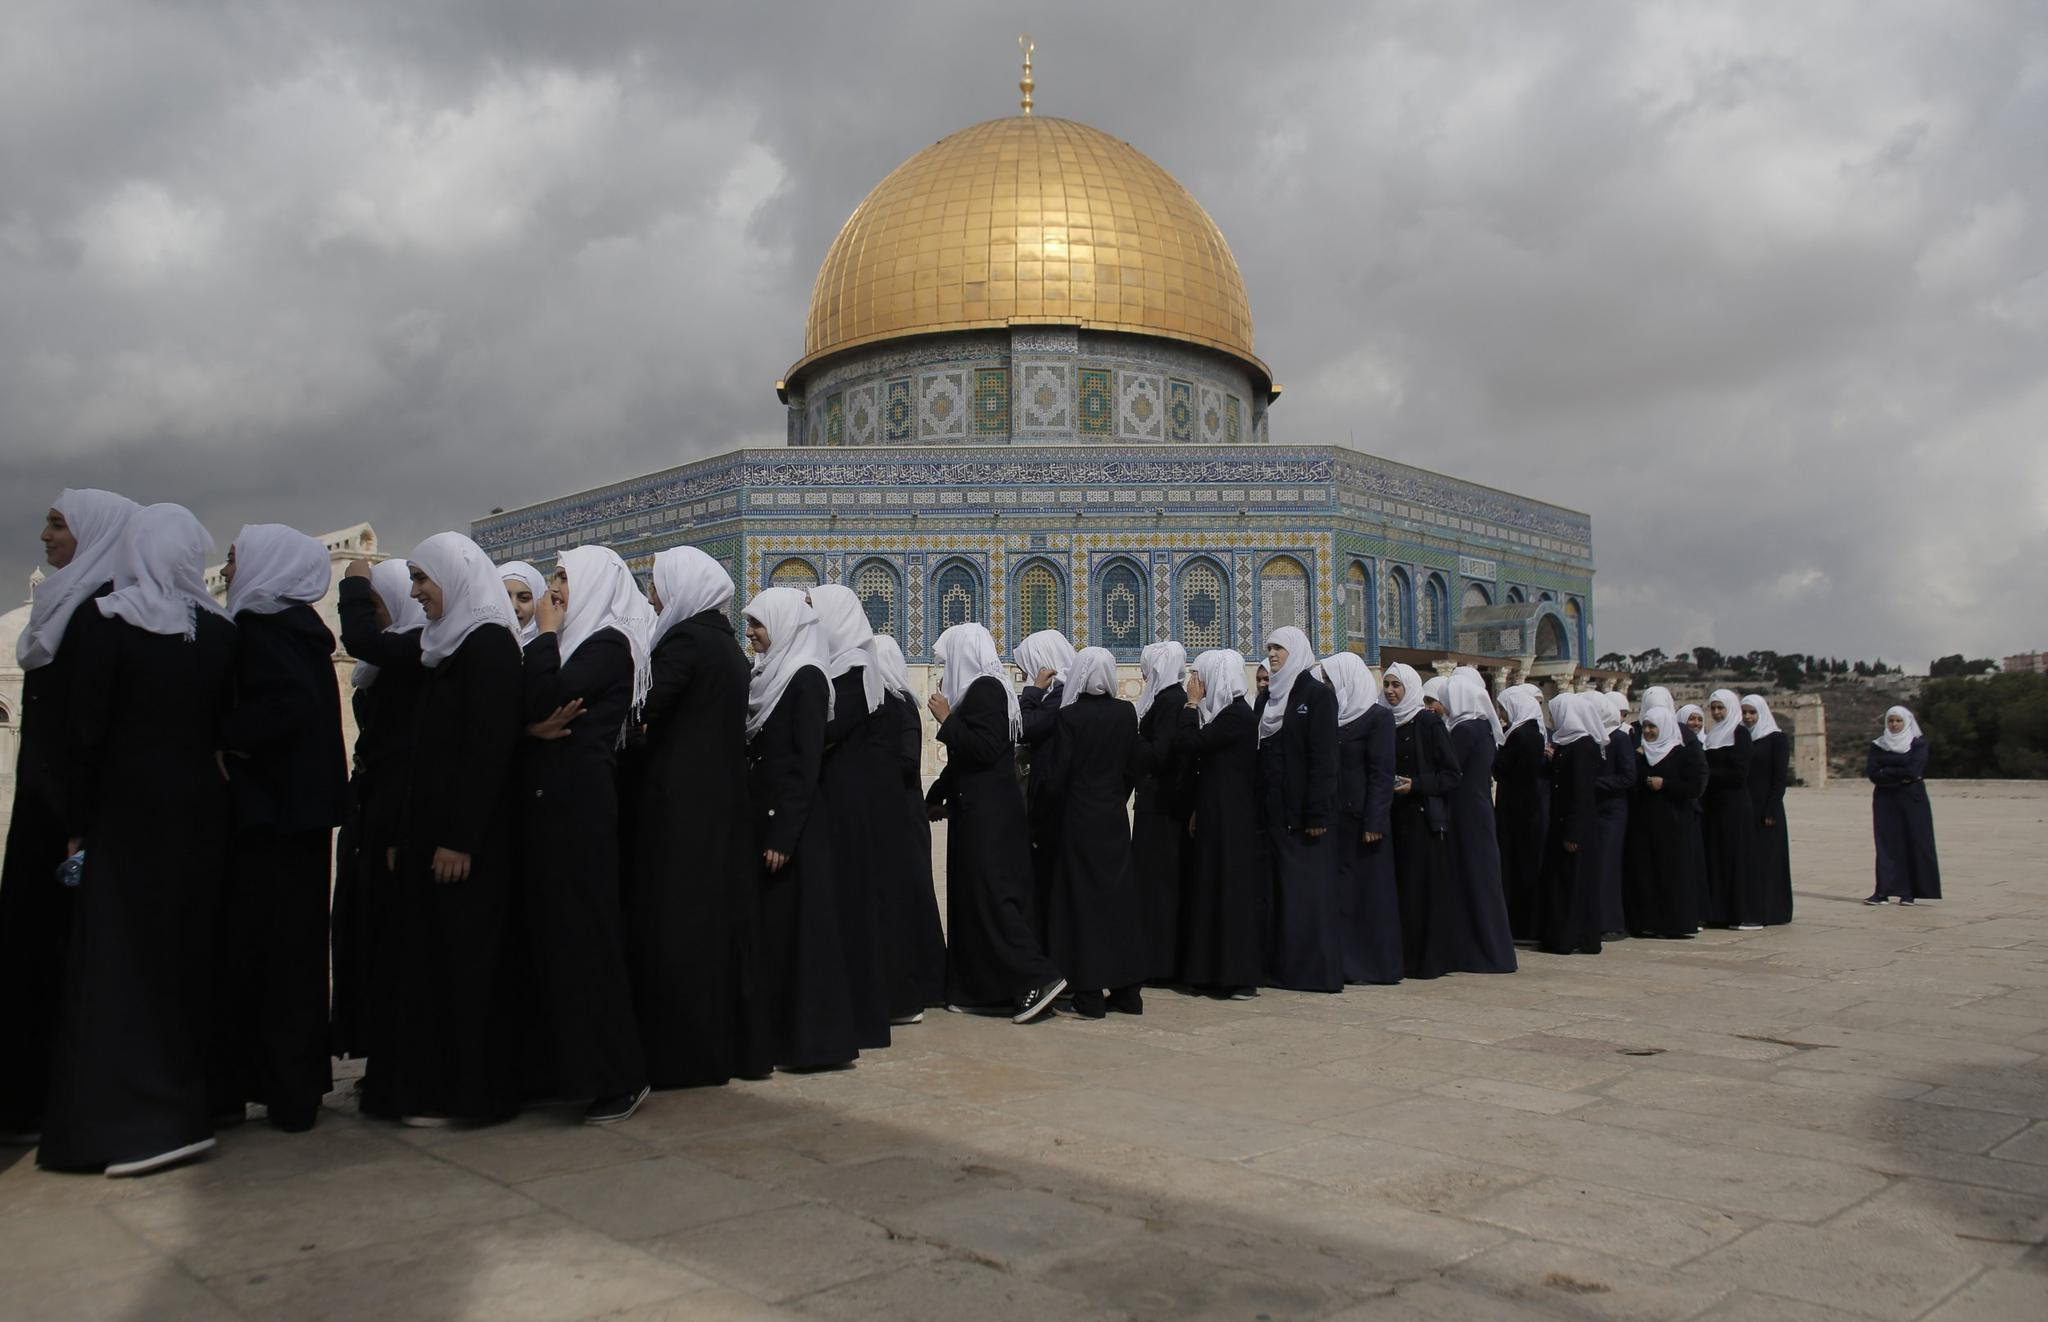 Palestinian school girls walk in line past the Dome of the Rock at the Al-Aqsa mosque compound in Jerusalem's Old City on October 27, 2015. Israeli lawmakers on Sunday approved a new version of a nation-state bill that would demote Arabic as an official language.